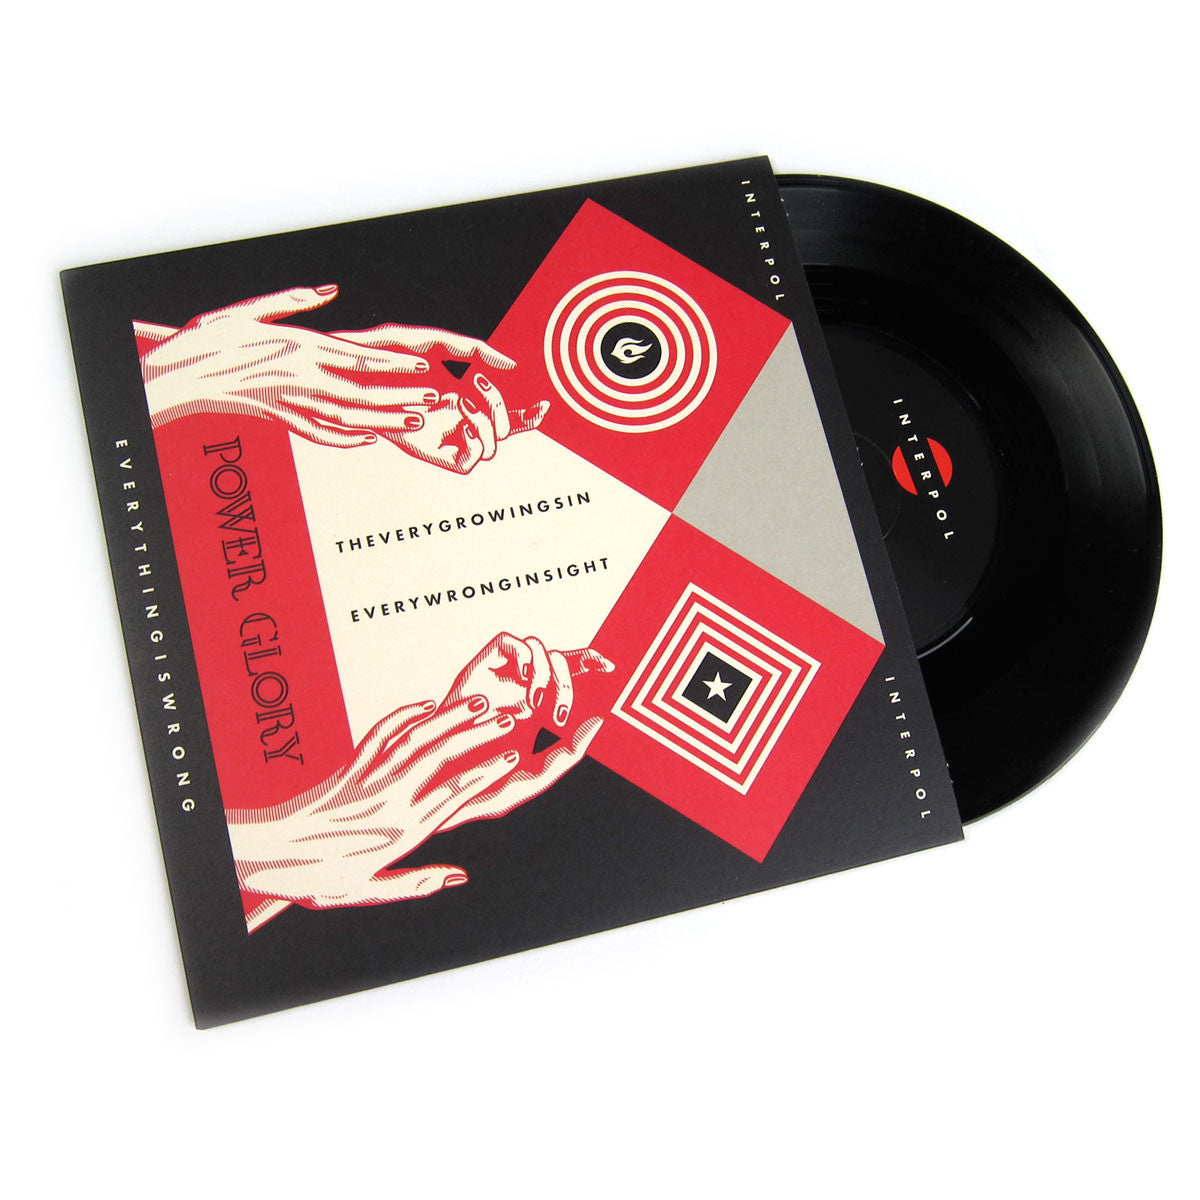 "Interpol: Everything Is Wrong / What Is What Vinyl 7"" (Record Store Day)"